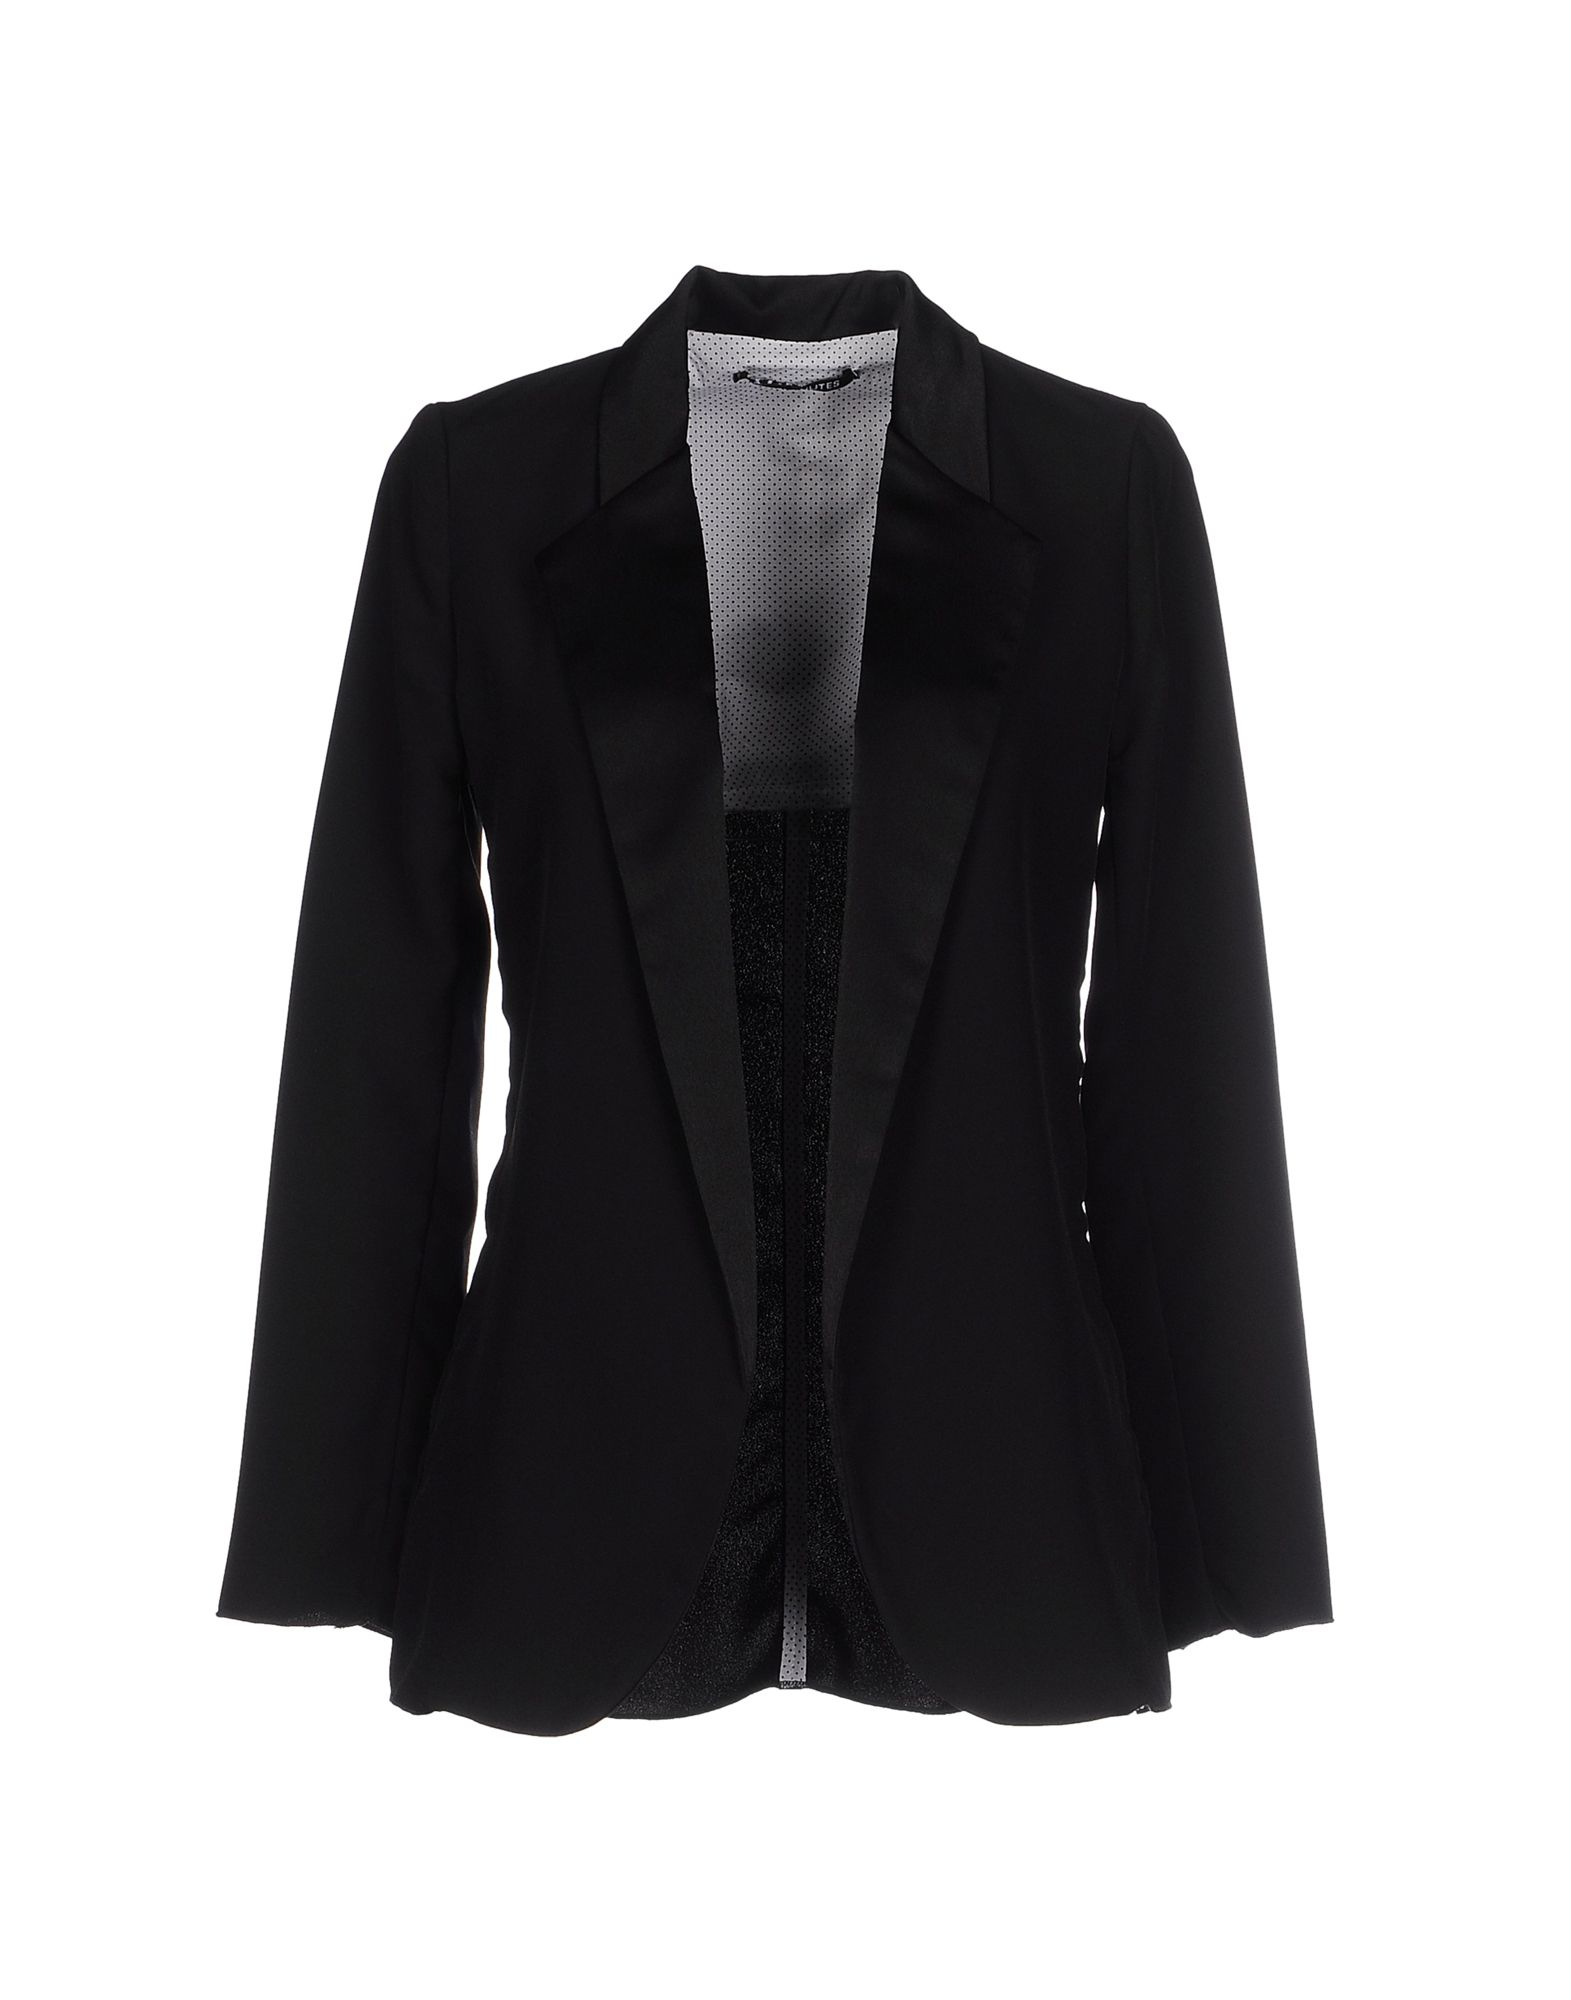 e9a00341680e0e nineminutes-black-blazer-product-1-830483885-normal.jpeg